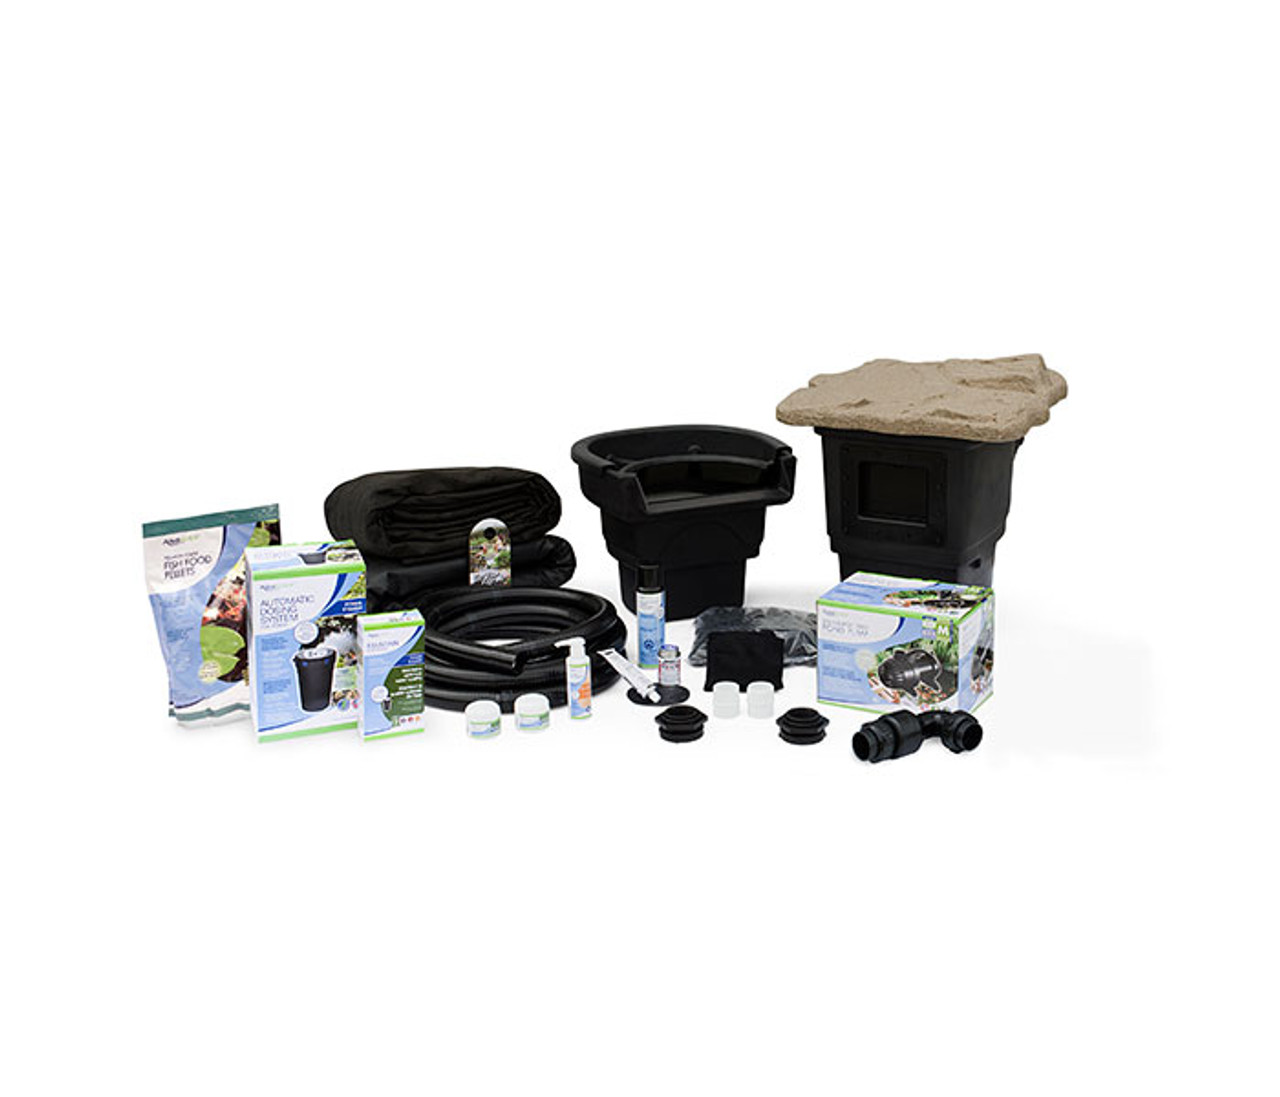 Aqauascape Small Pond Kit - 8' x 11'